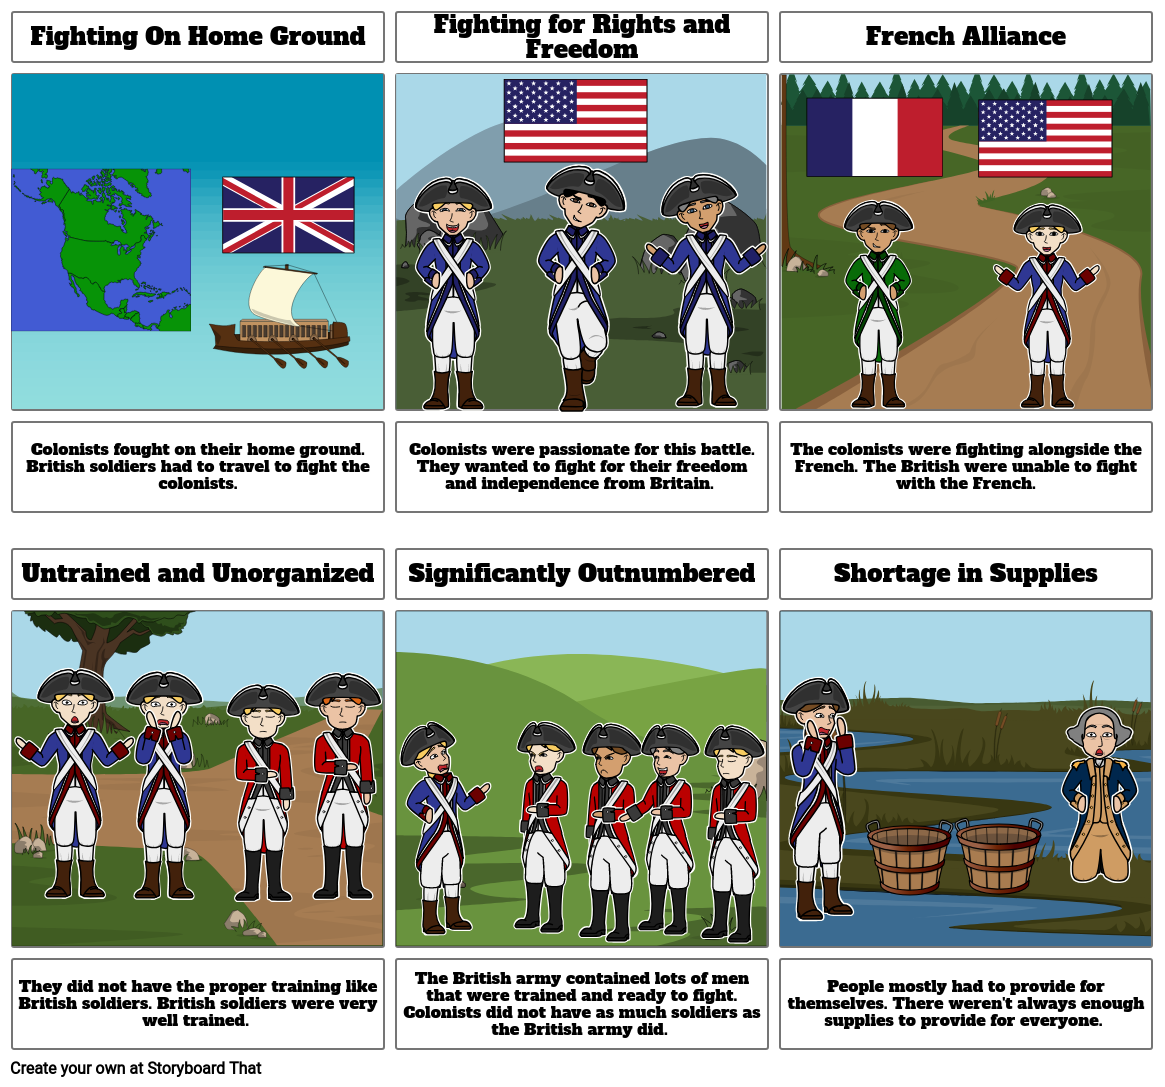 American Revolution - Continental Army Advantages and Disadvantages